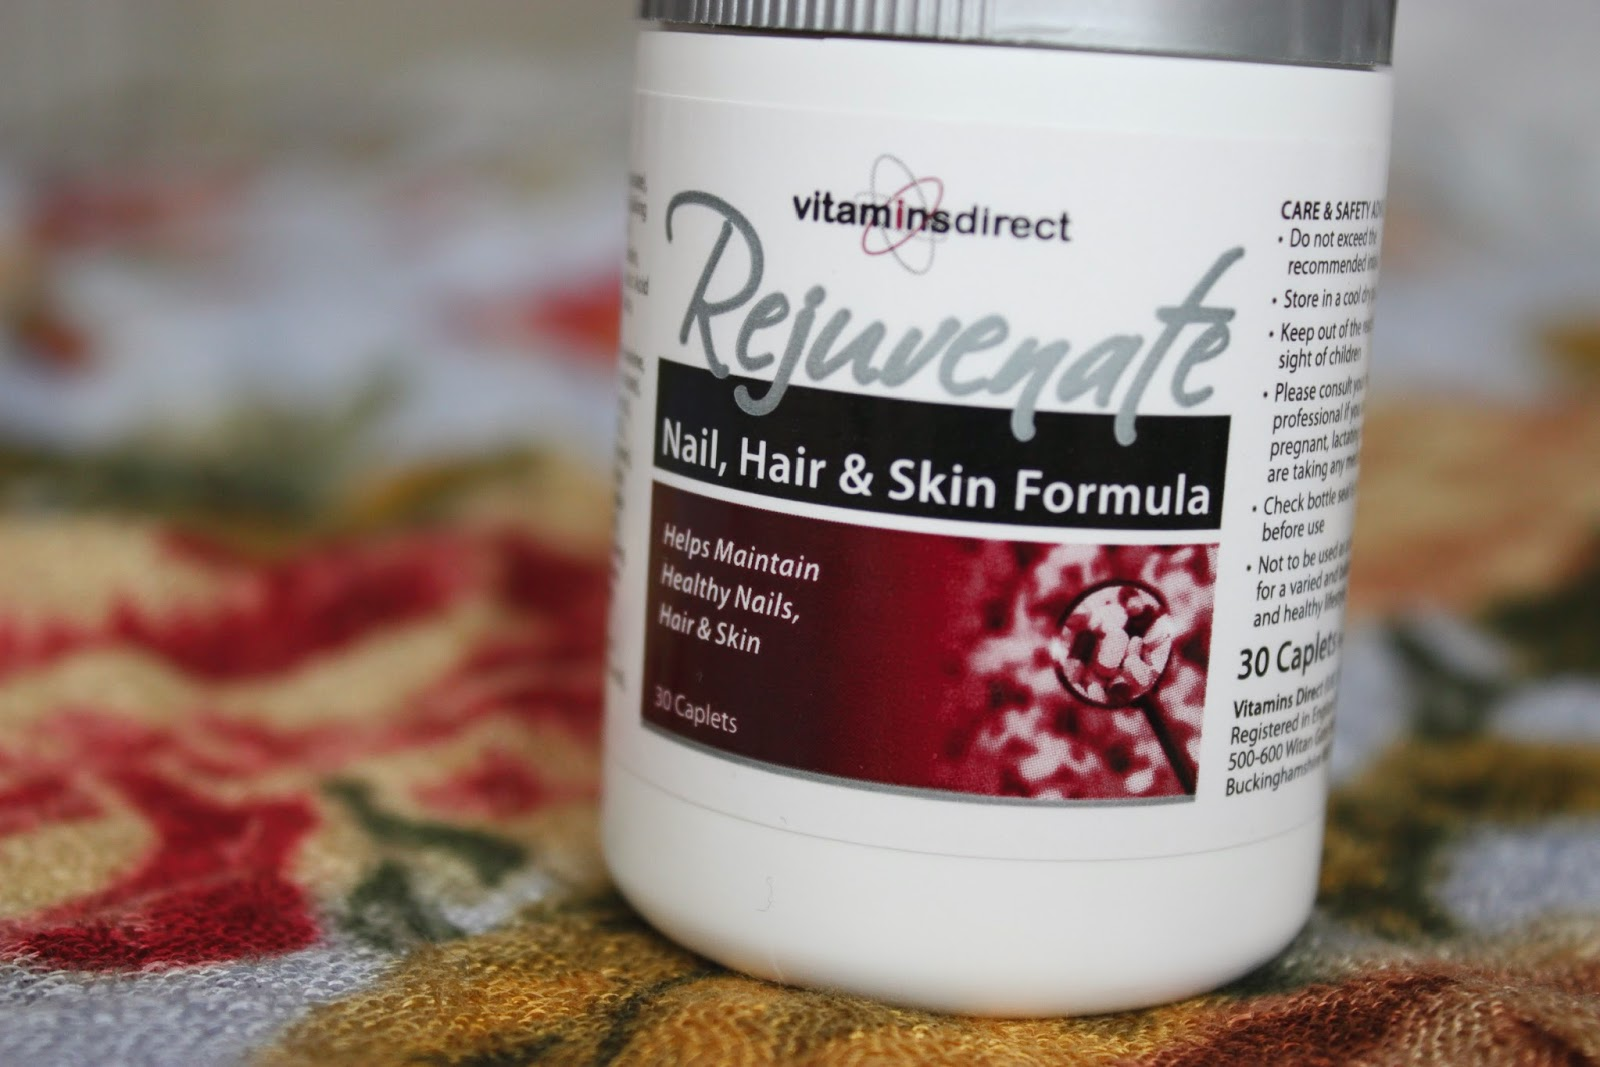 Picture of Vitamins Direct Rejuvenate Nail, Hair & Skin Formula